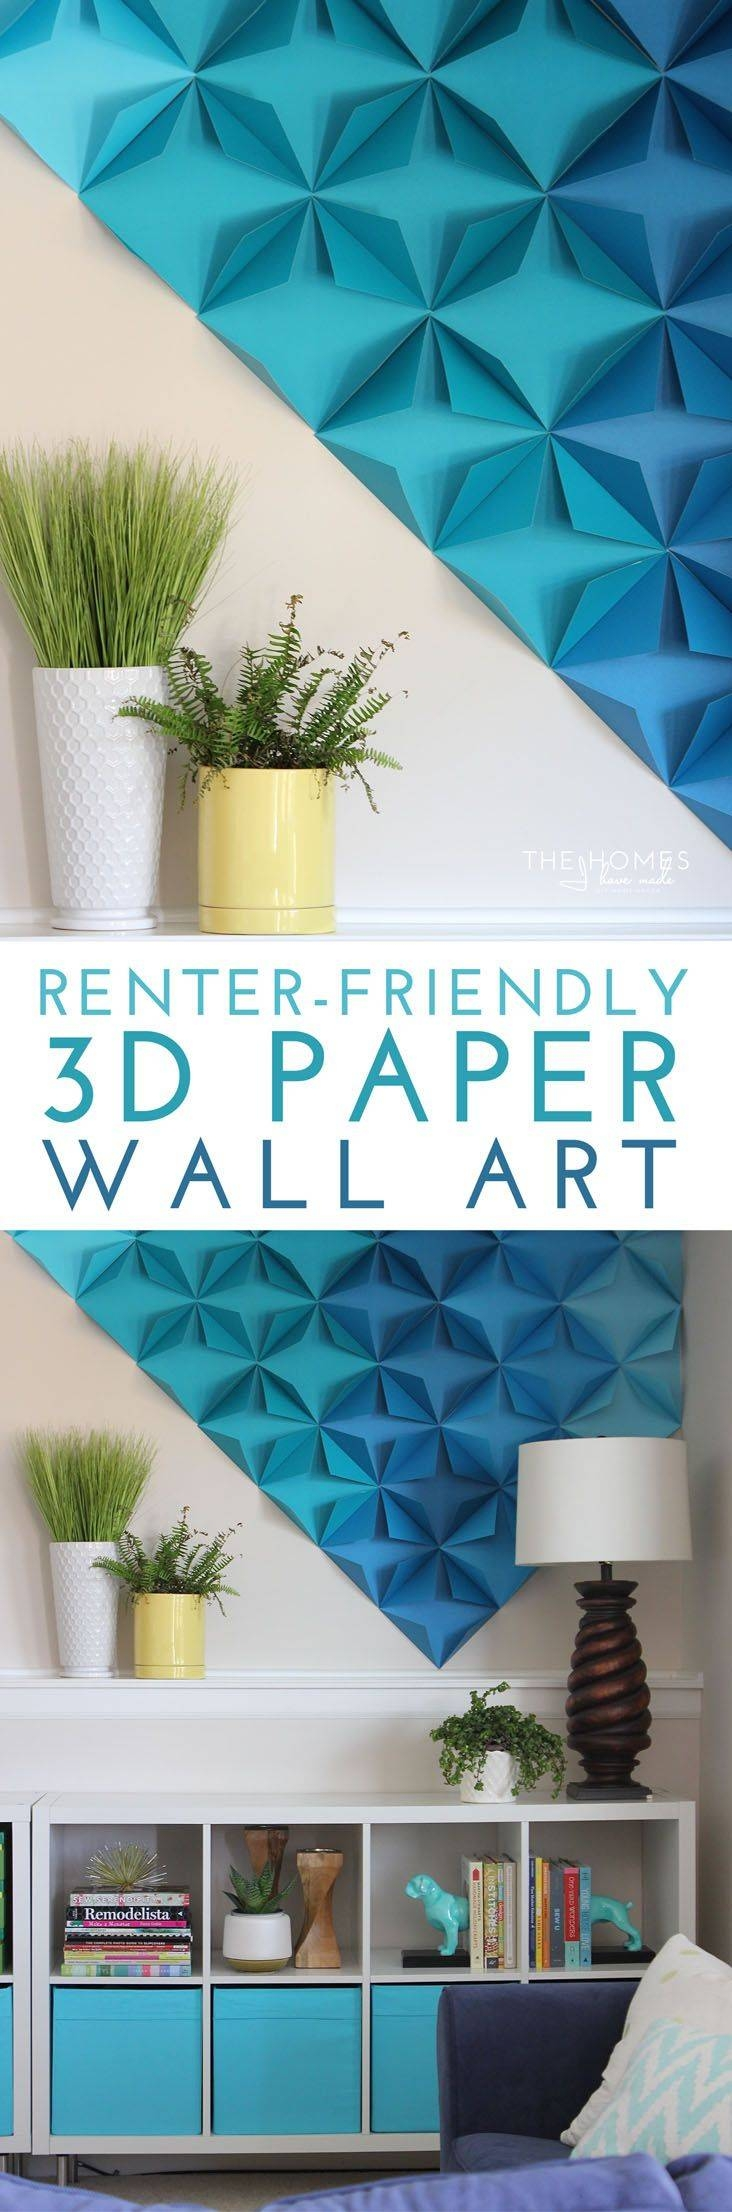 25+ Unique 3d Wall Art Ideas On Pinterest | Butterfly Wall, Diy For Recent Diy 3d Paper Wall Art (View 3 of 20)